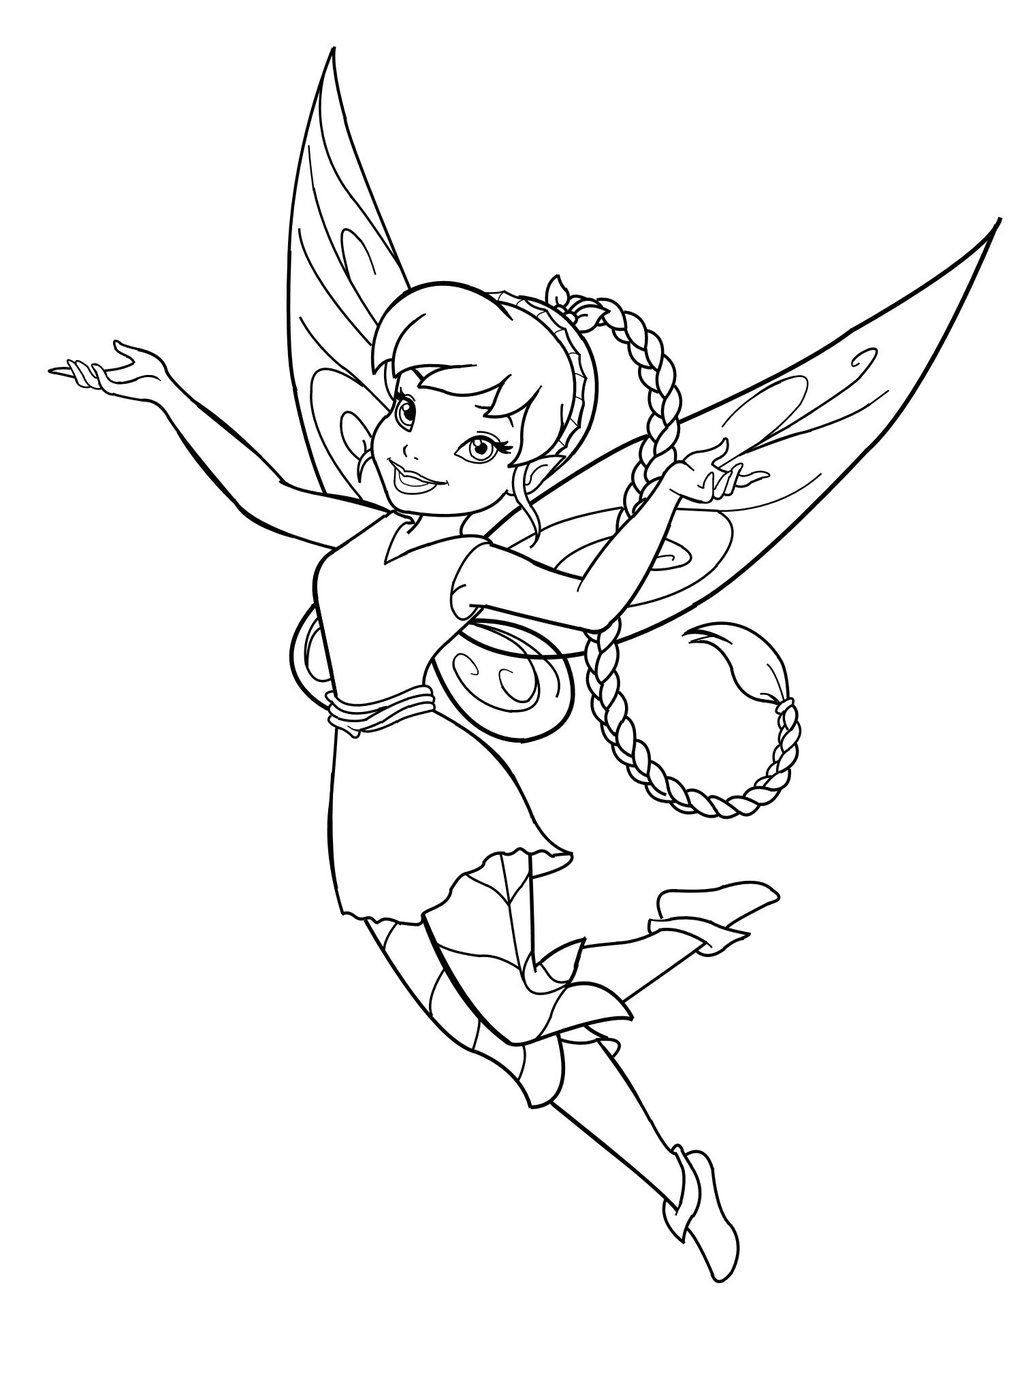 Free Printable Fairy Coloring Pages For Kids - disney fairies coloring pages to print